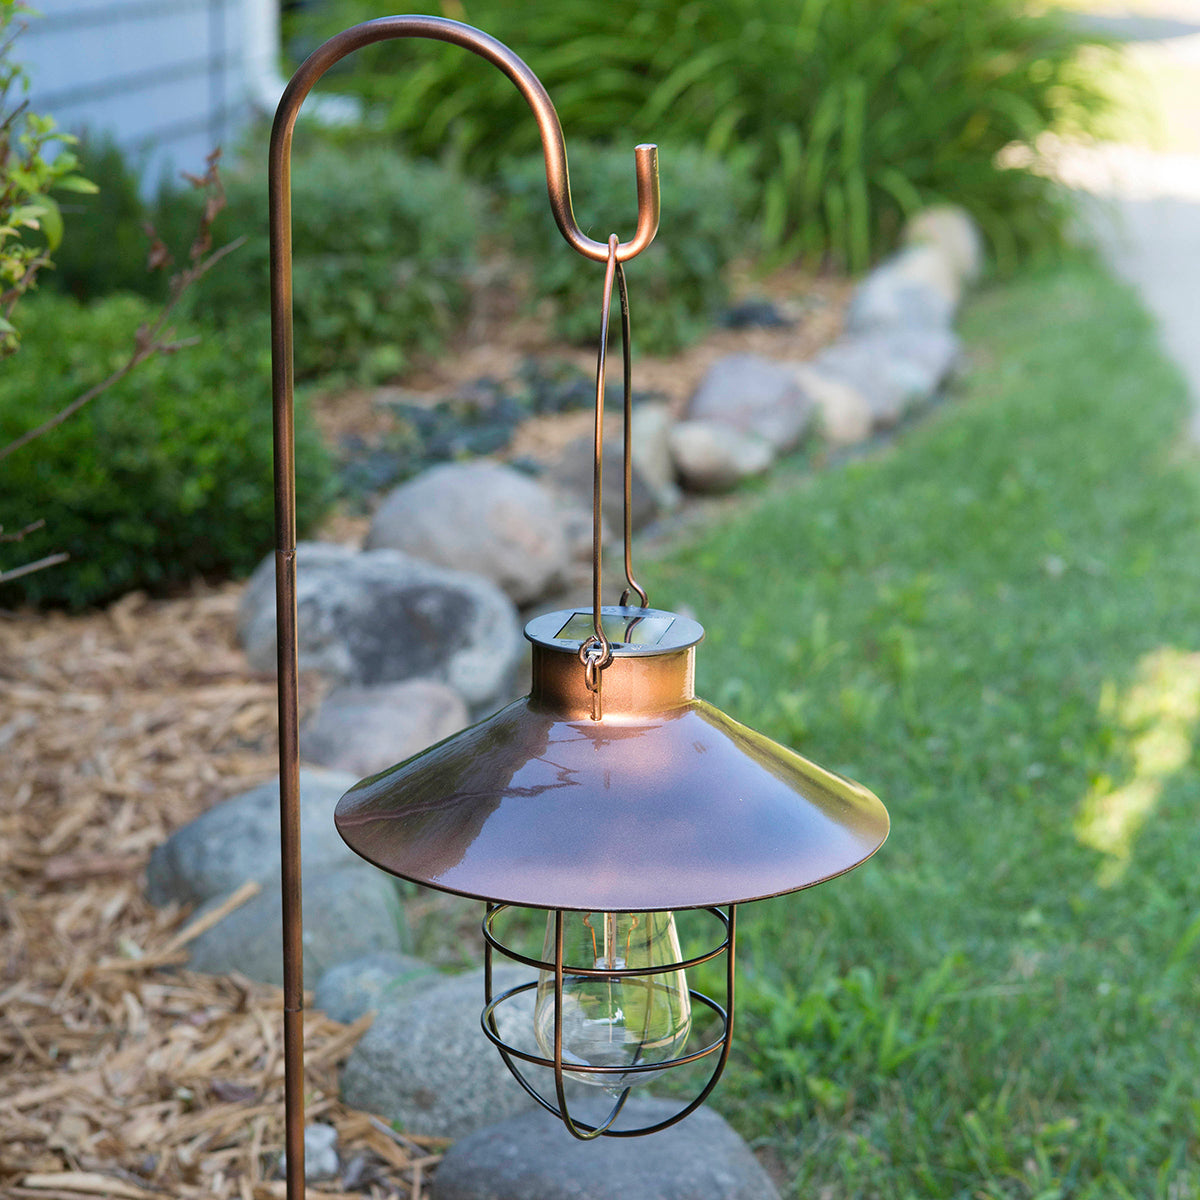 Marine Pendant Edi-Sol Lantern with Shepherd's Rod - Copper